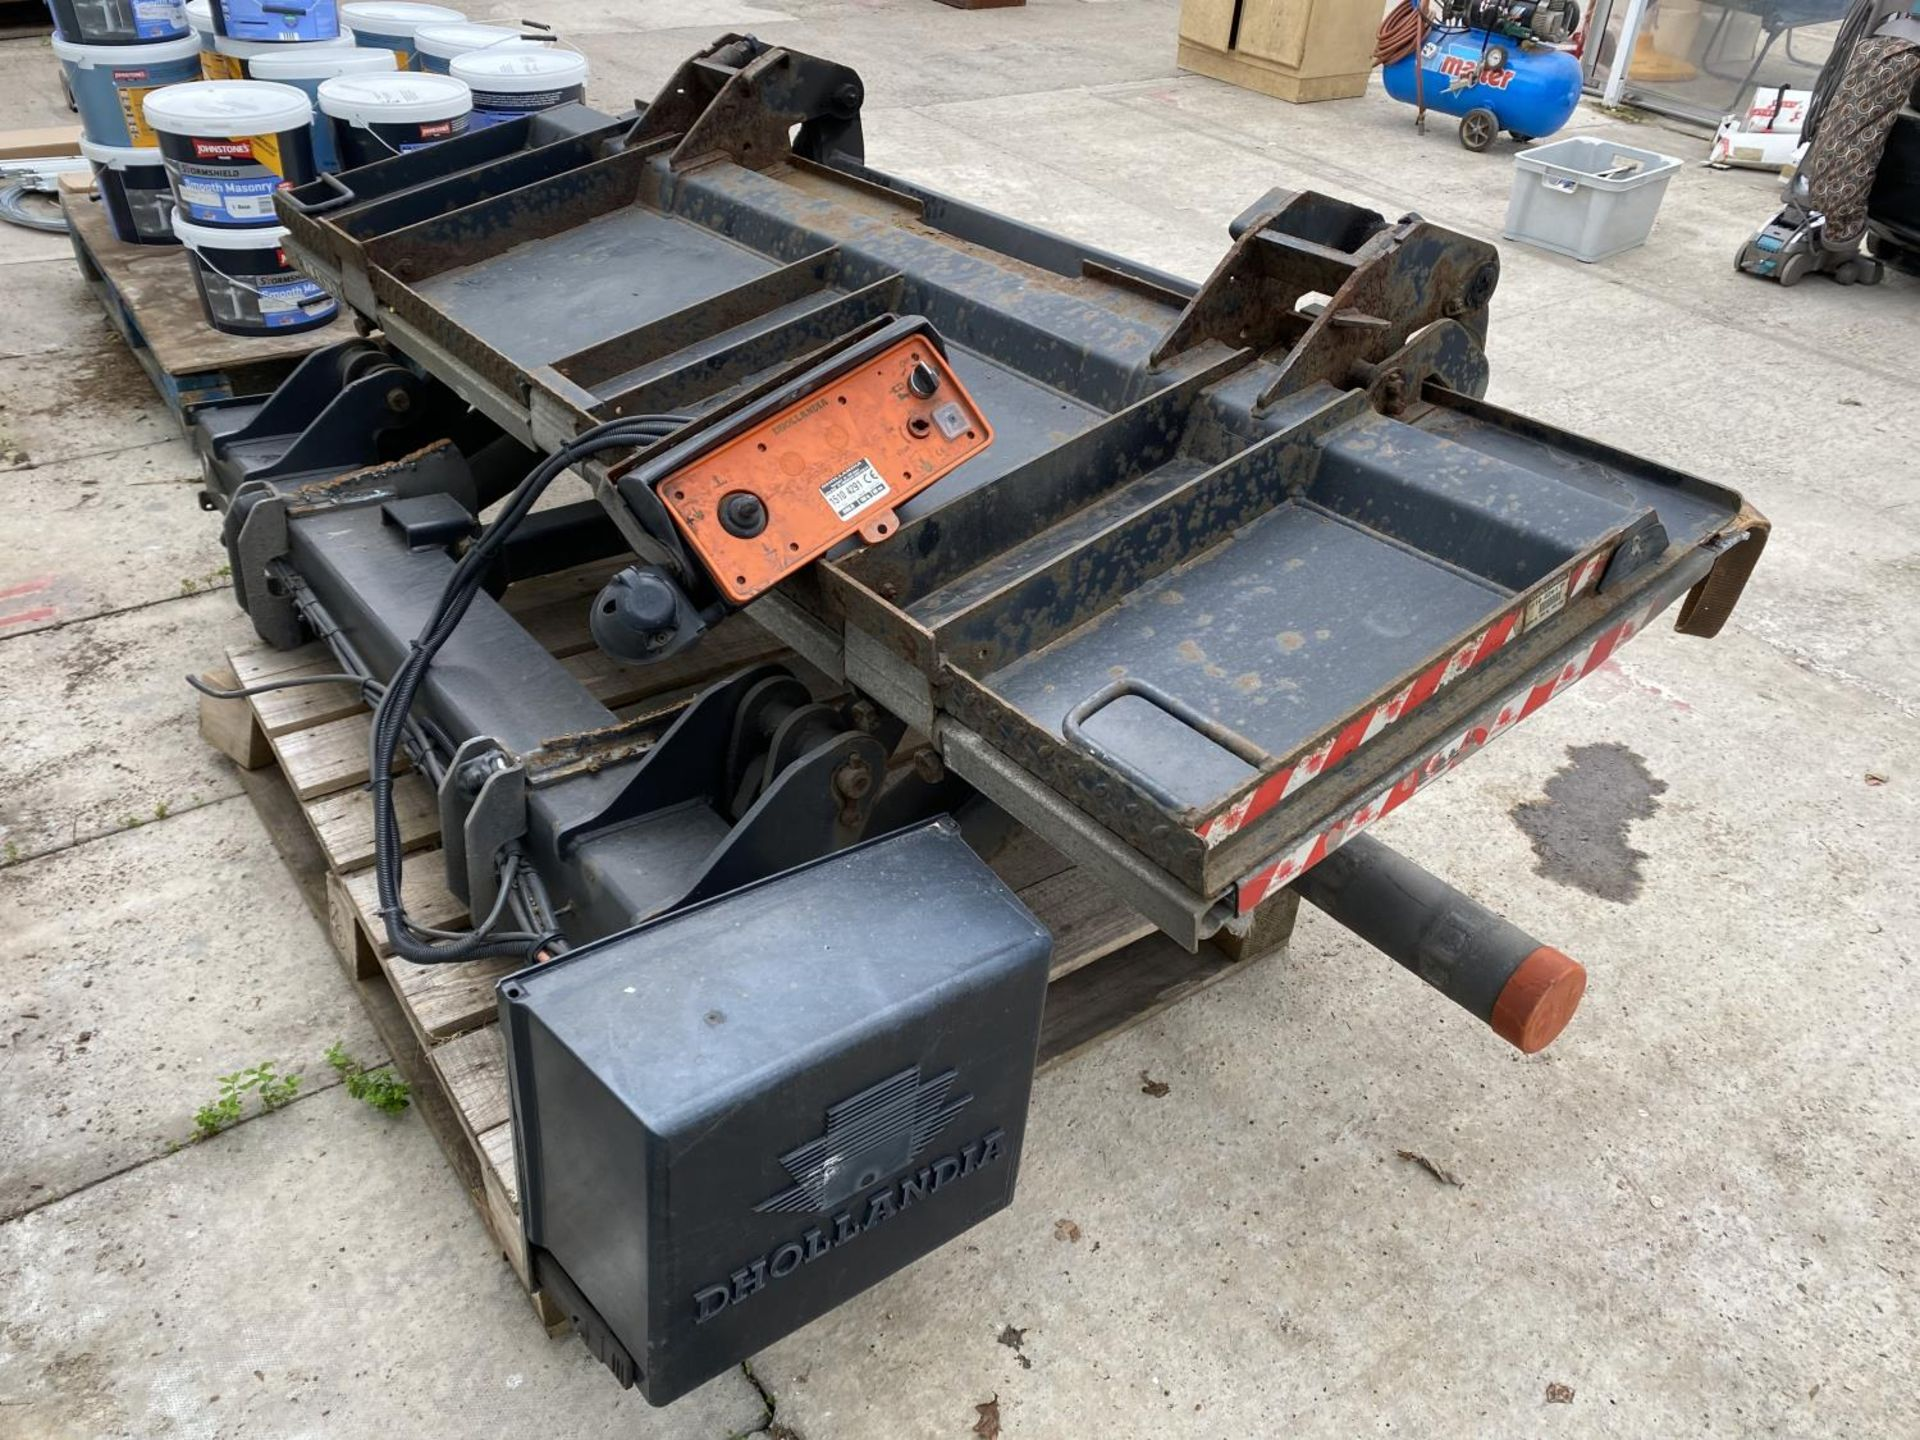 A D.HOLLANDIA TAIL LIFT 1500 KG. BELIEVED WORKING NO WARRANTY - NO VAT - Image 4 of 6